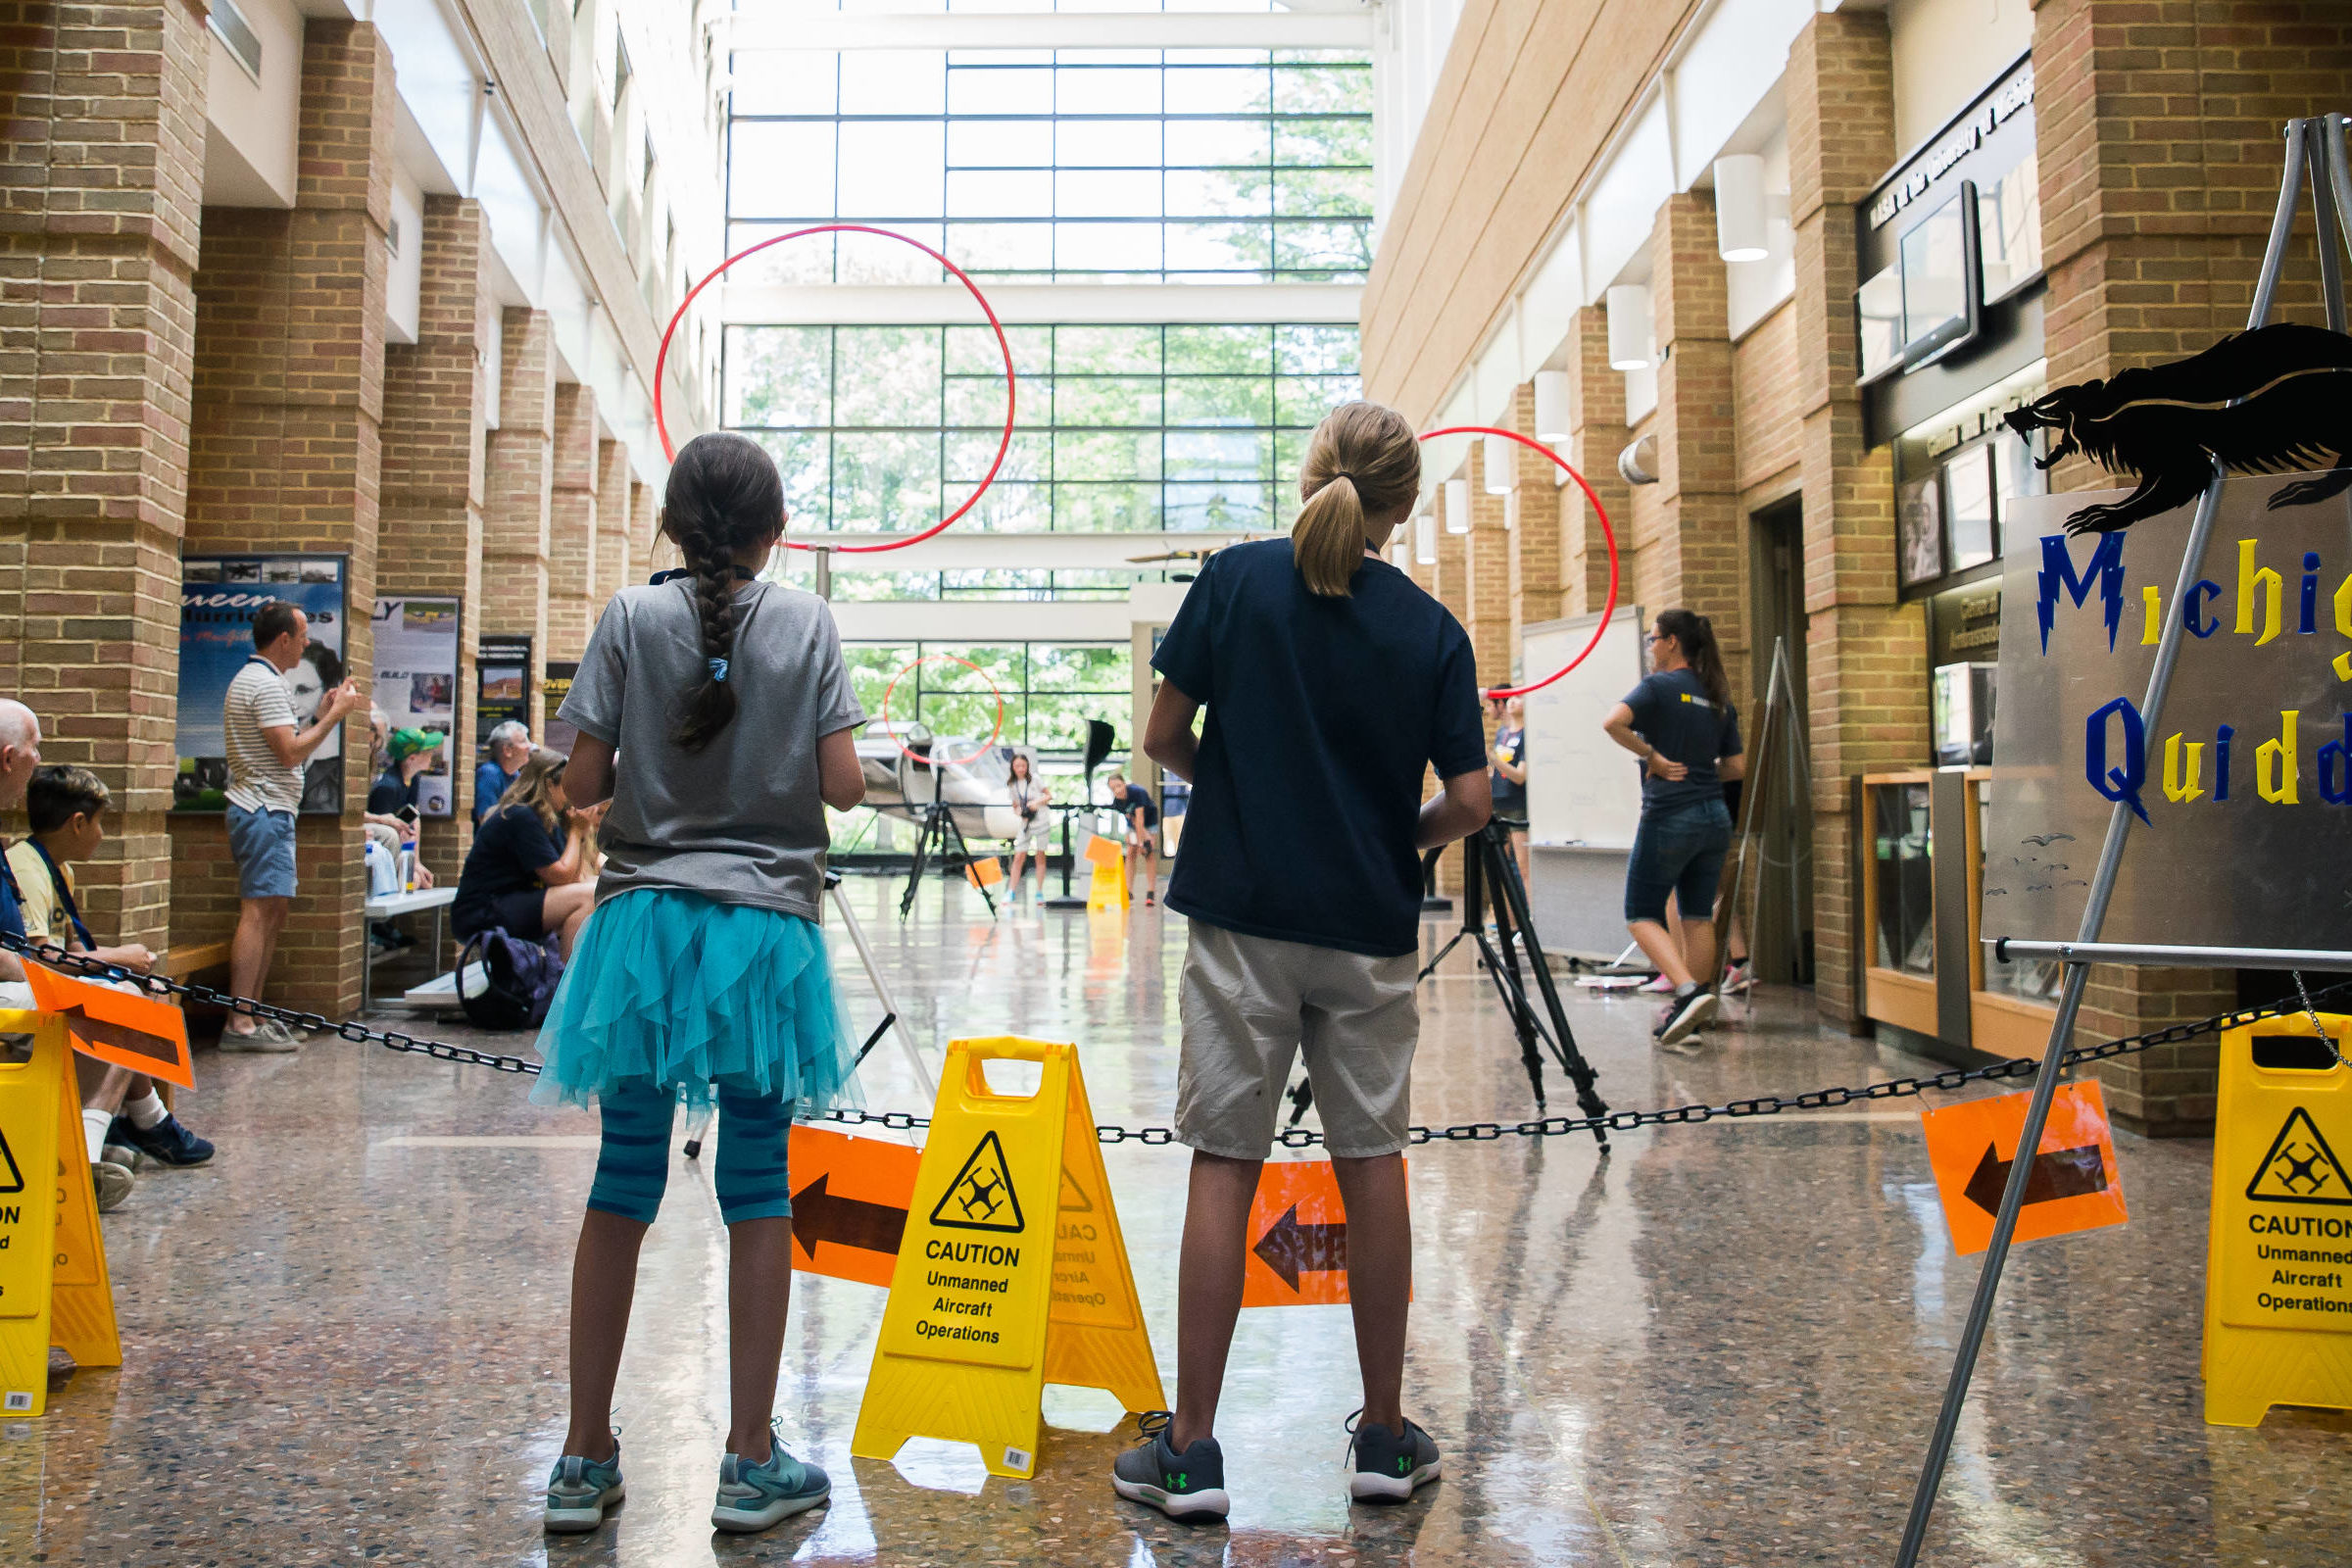 Students play Quadcopter Quidditch in the FXB atrium. Photo Credit: Chris Chartier.